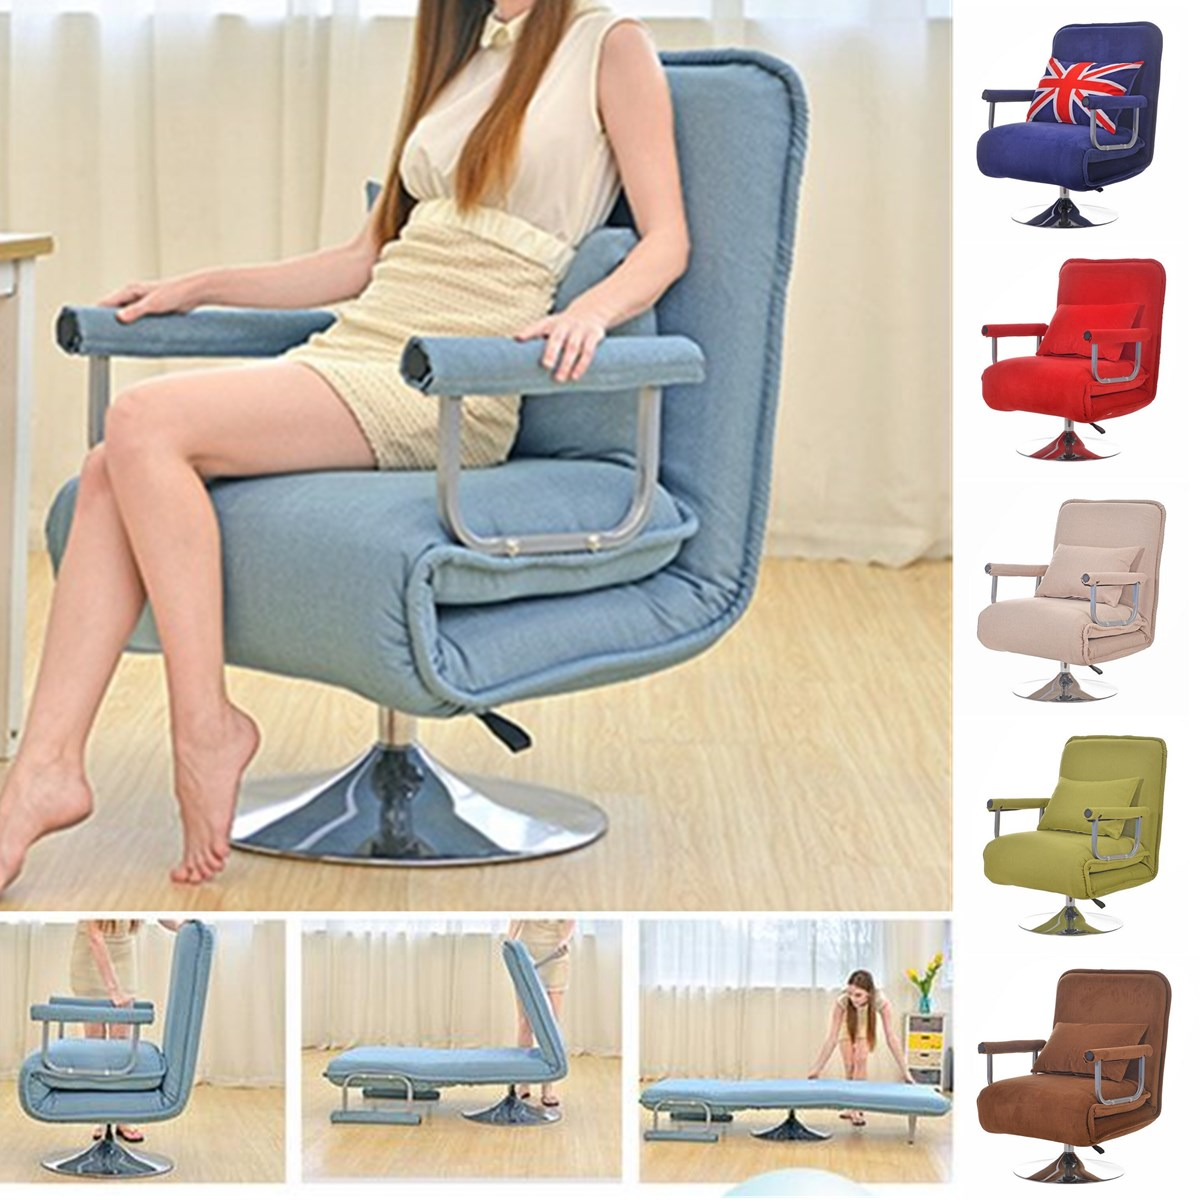 Incredible Details About Luxury Multi Function Convertible Rotation Sofa Bed Folding Chair Couch Recliner Bralicious Painted Fabric Chair Ideas Braliciousco